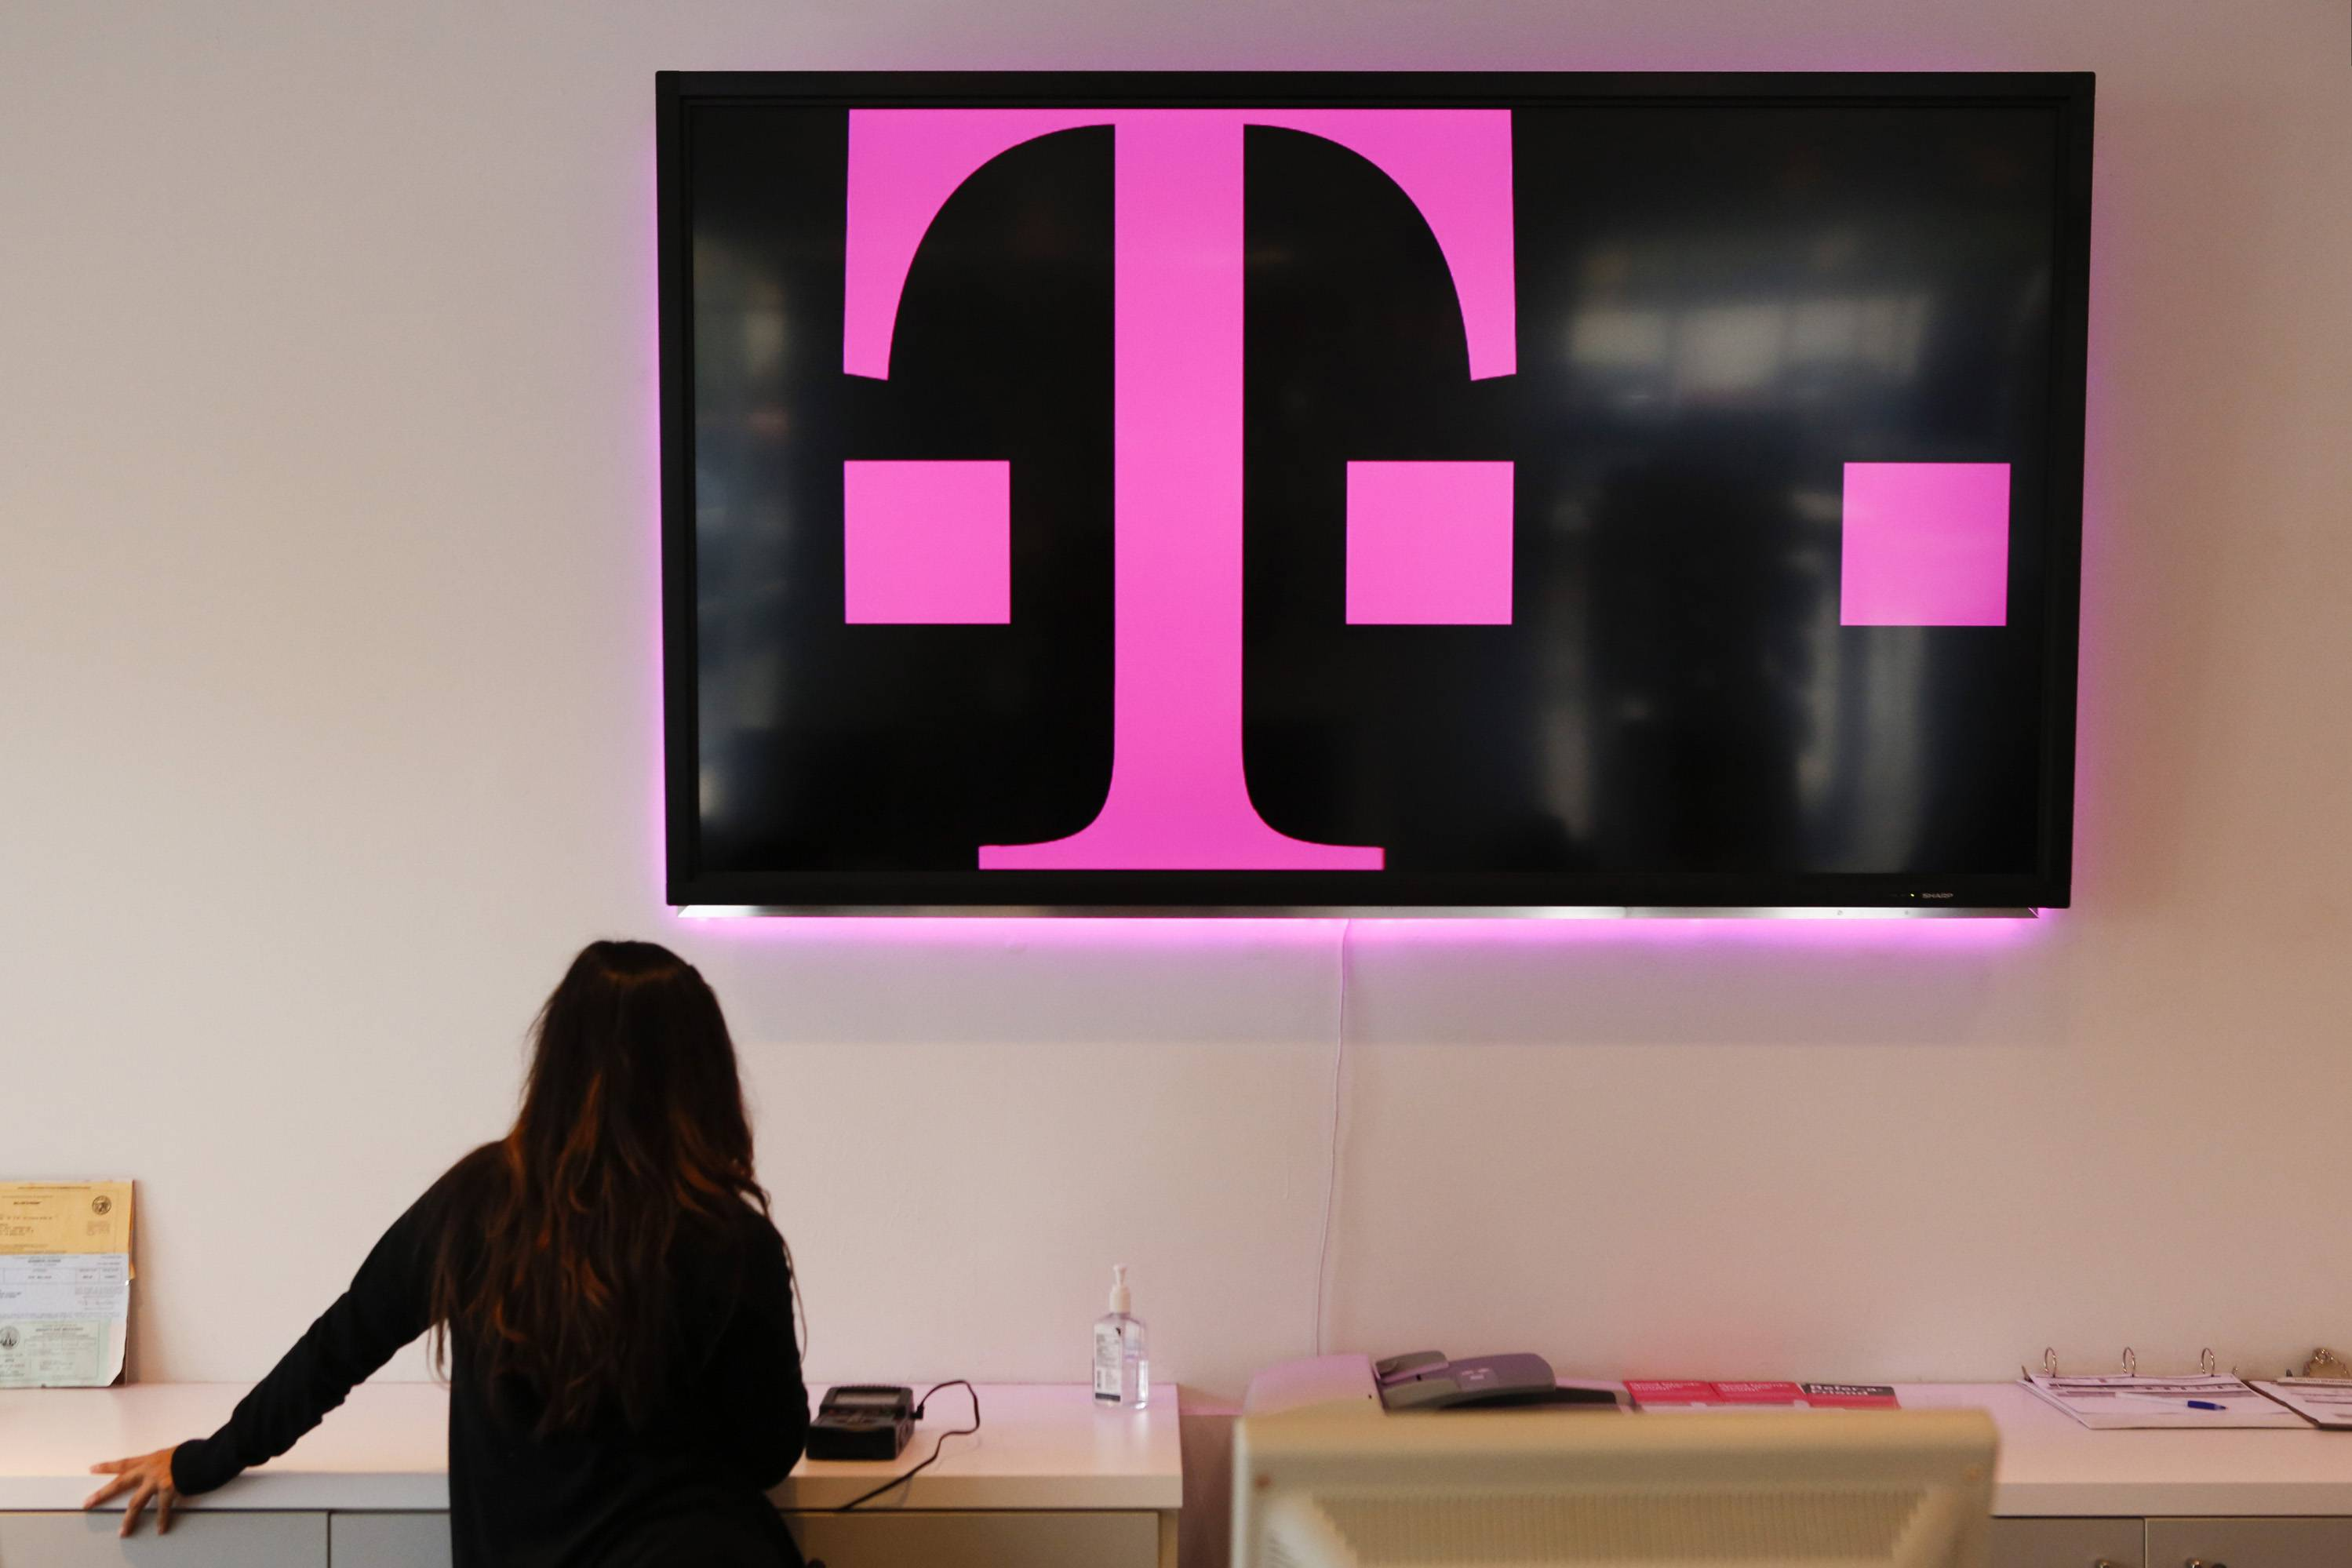 In the latest merger-in-the-making, Sprint Corp. has proposed acquiring scrappy underdog carrier T-Mobile US Inc. in a deal valued at about $31 billion. That would leave just three major players in the U.S. mobile-phone market -- an understandable concern for regulators, who seem likely to block the merger in the name of encouraging low prices and preserving competition.